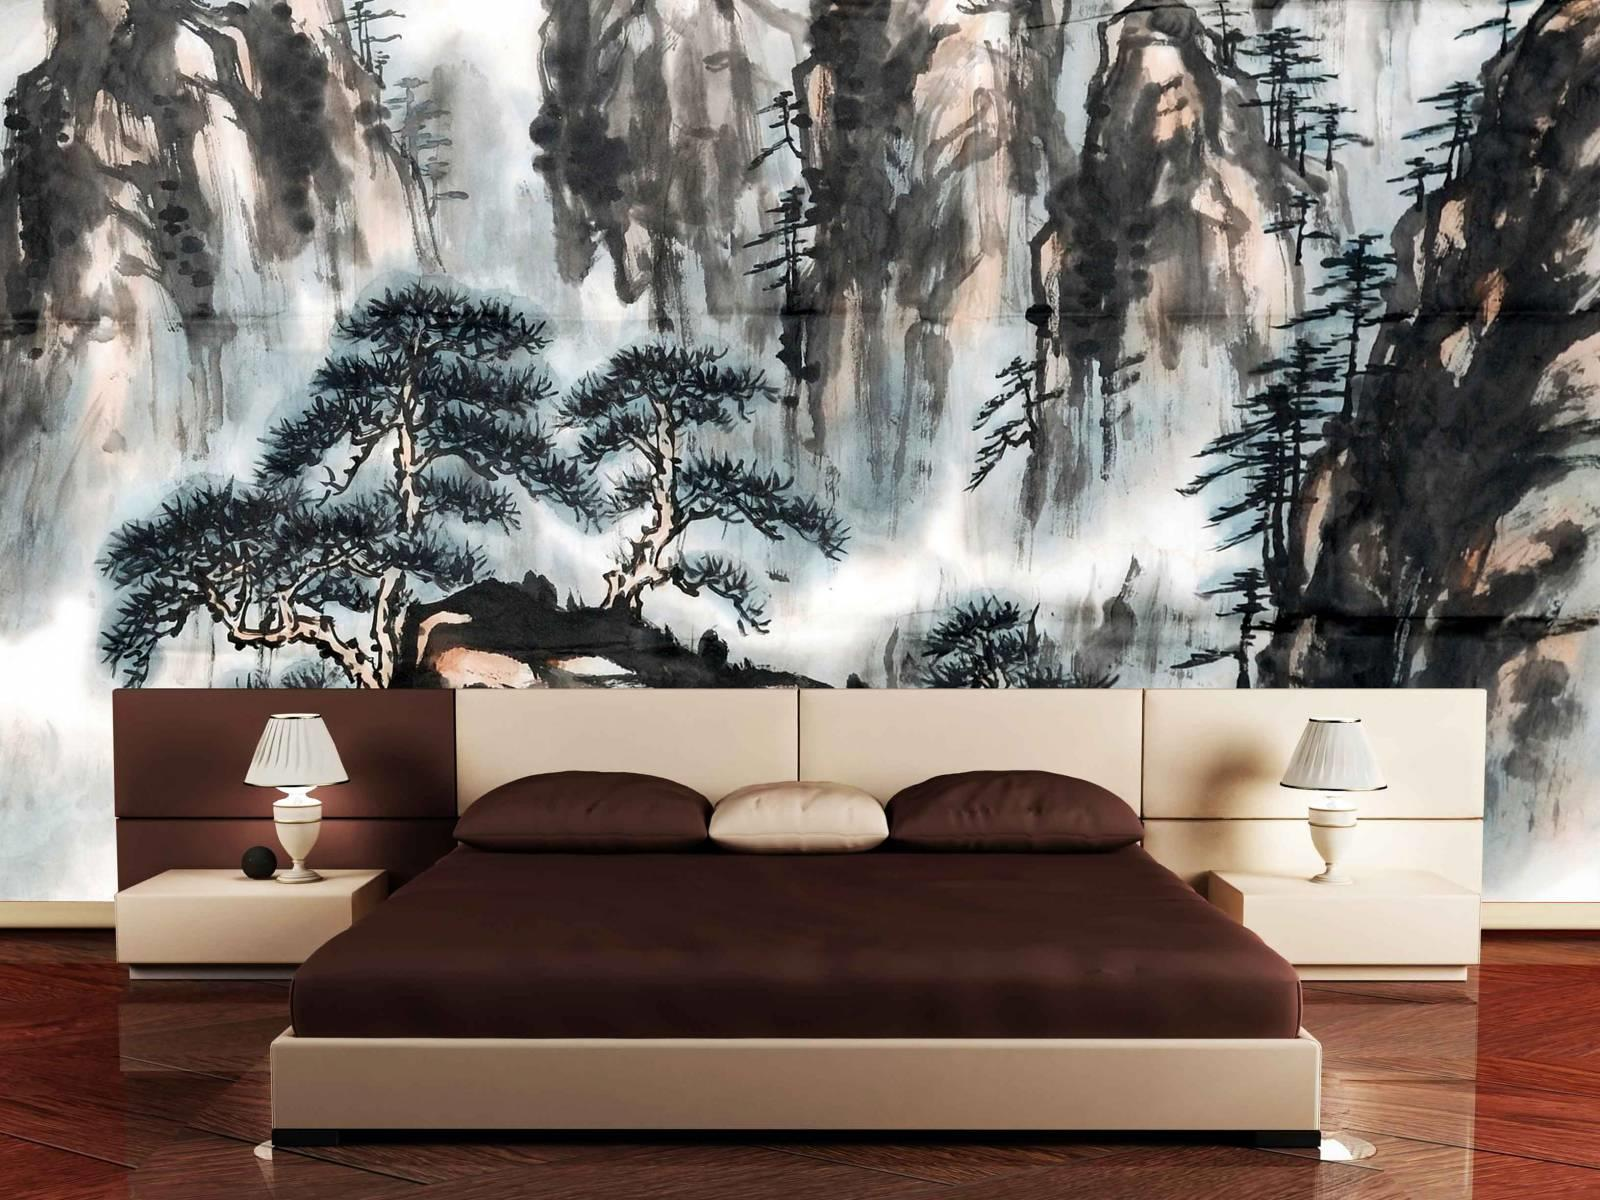 Oriental Bedroom Decor Oriental Bedroom Decor